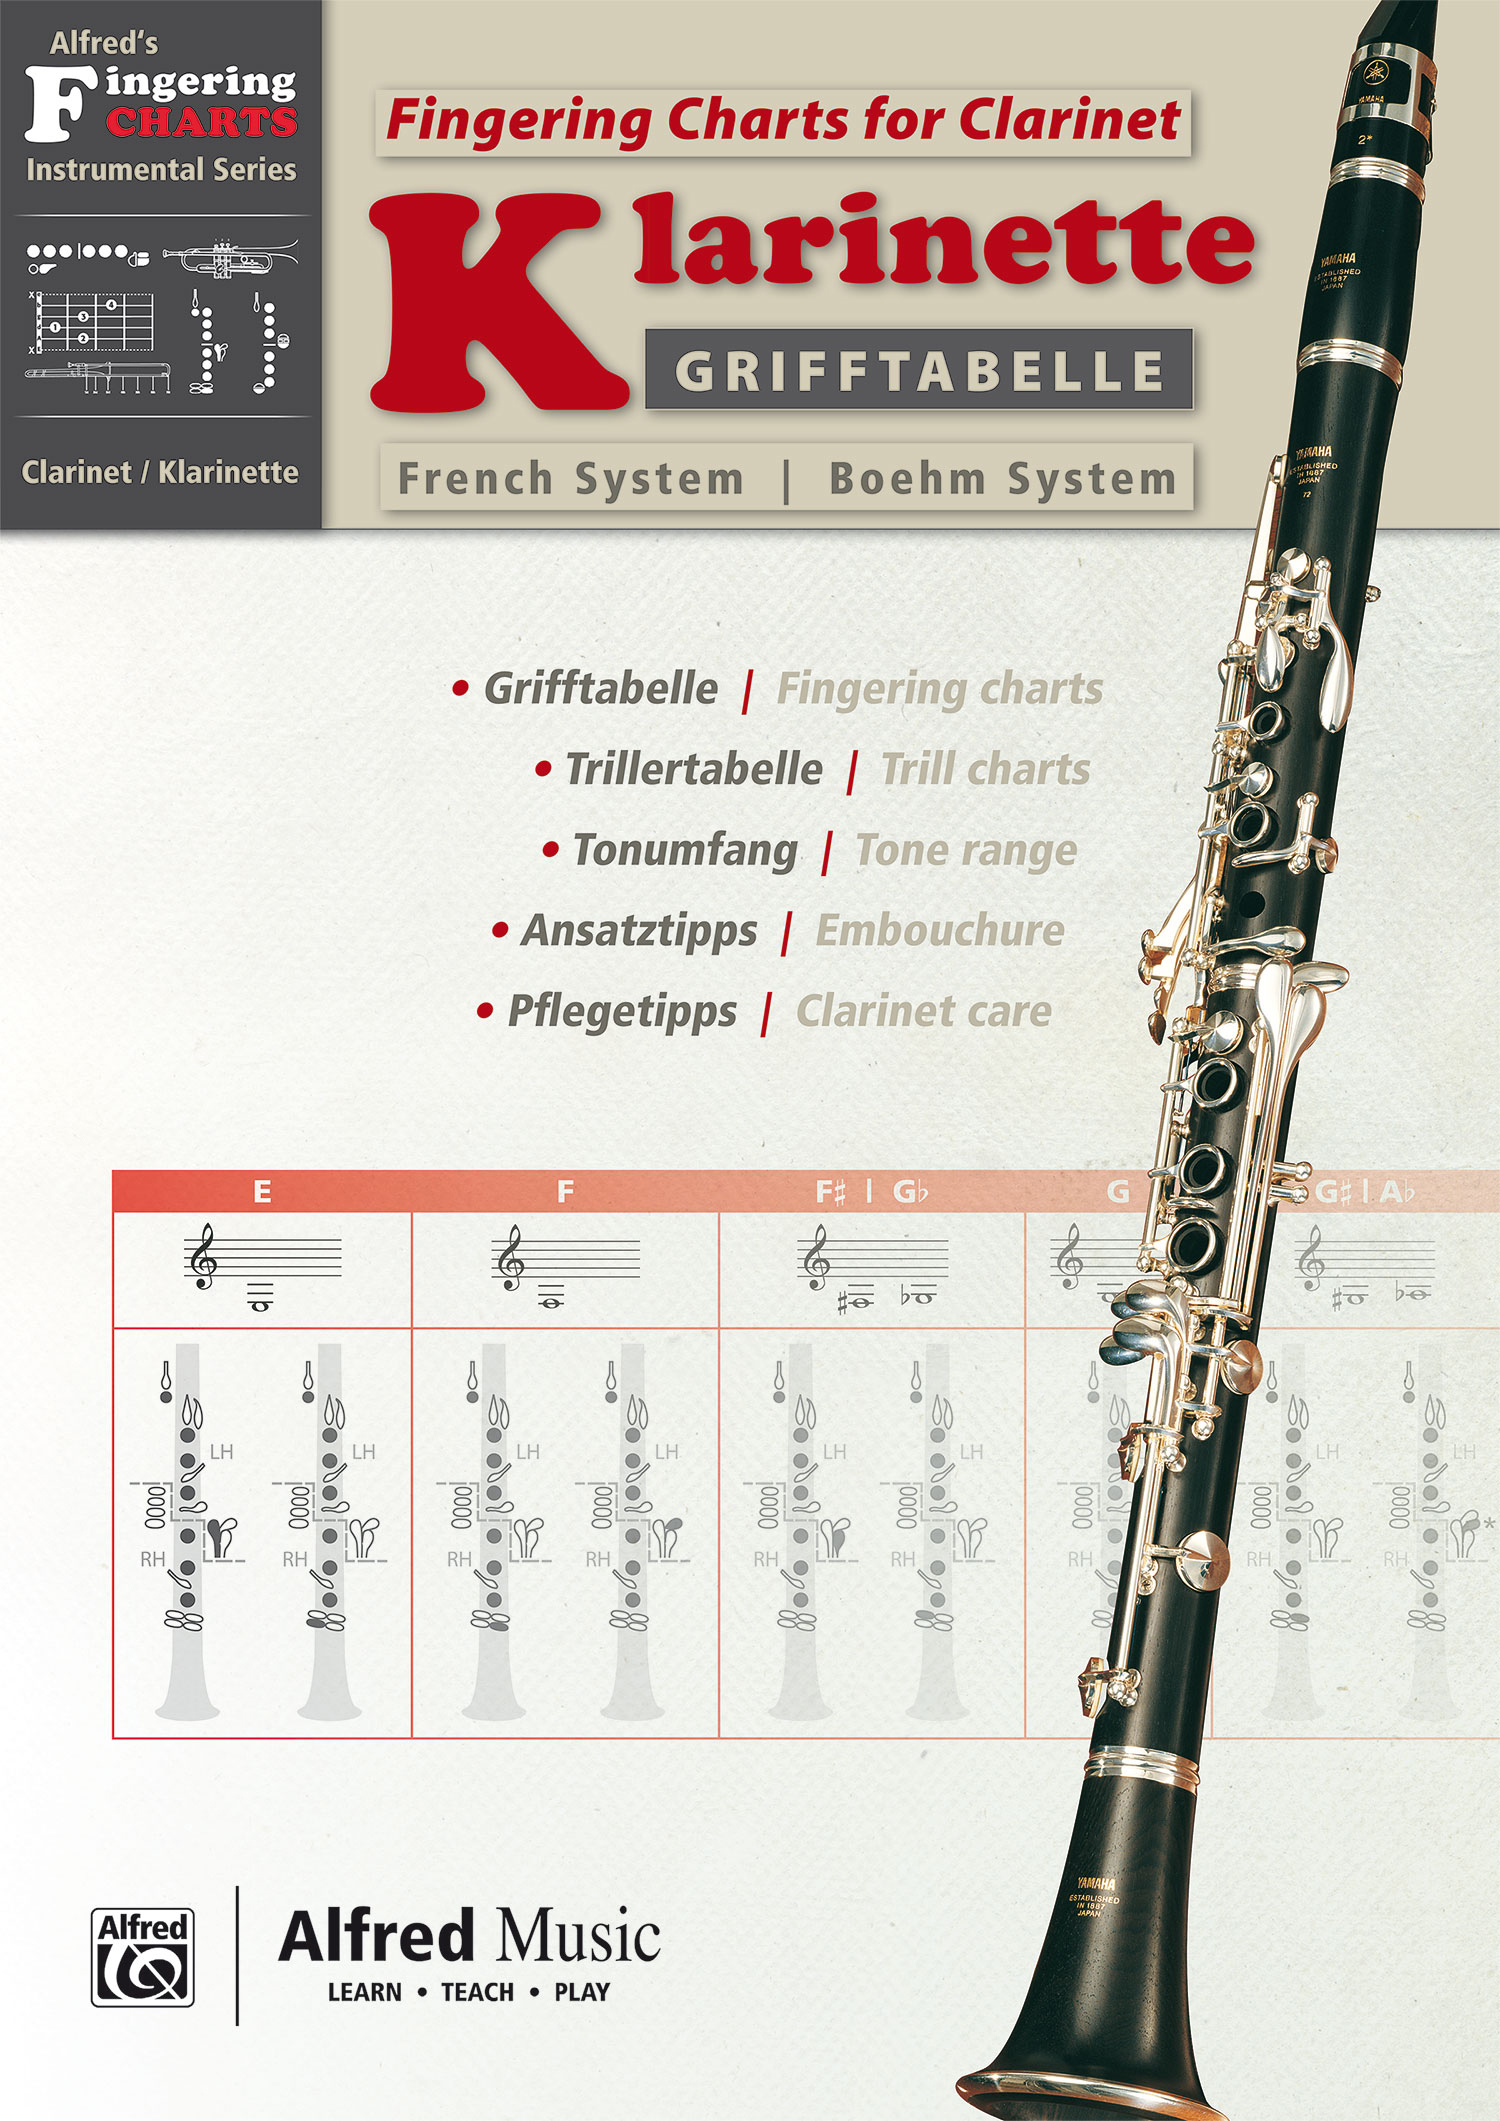 Grifftabelle Klarinette Boehm System | Fingering Charts for Bb-Clarinet Fre ...